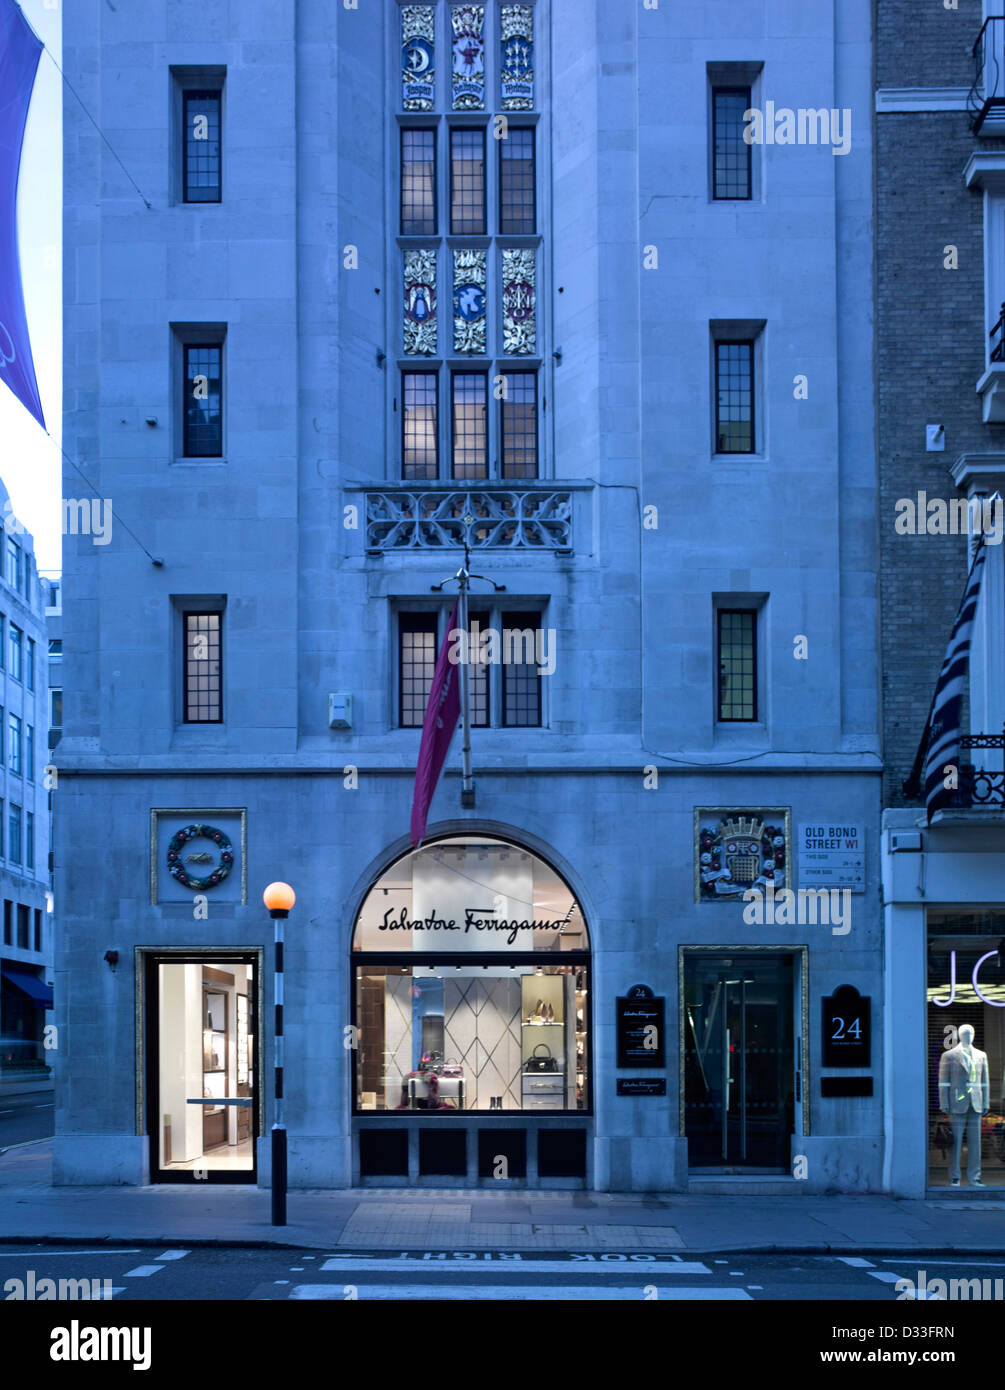 Visit your local Salvatore Ferragamo at 24 Old Bond Street in London, Greater London to explore the new collections. Shop women's and men's shoes, ties and belts: perfection made in coolninjagames.gaon: 24 Old Bond Street, London, W1S 4AL.